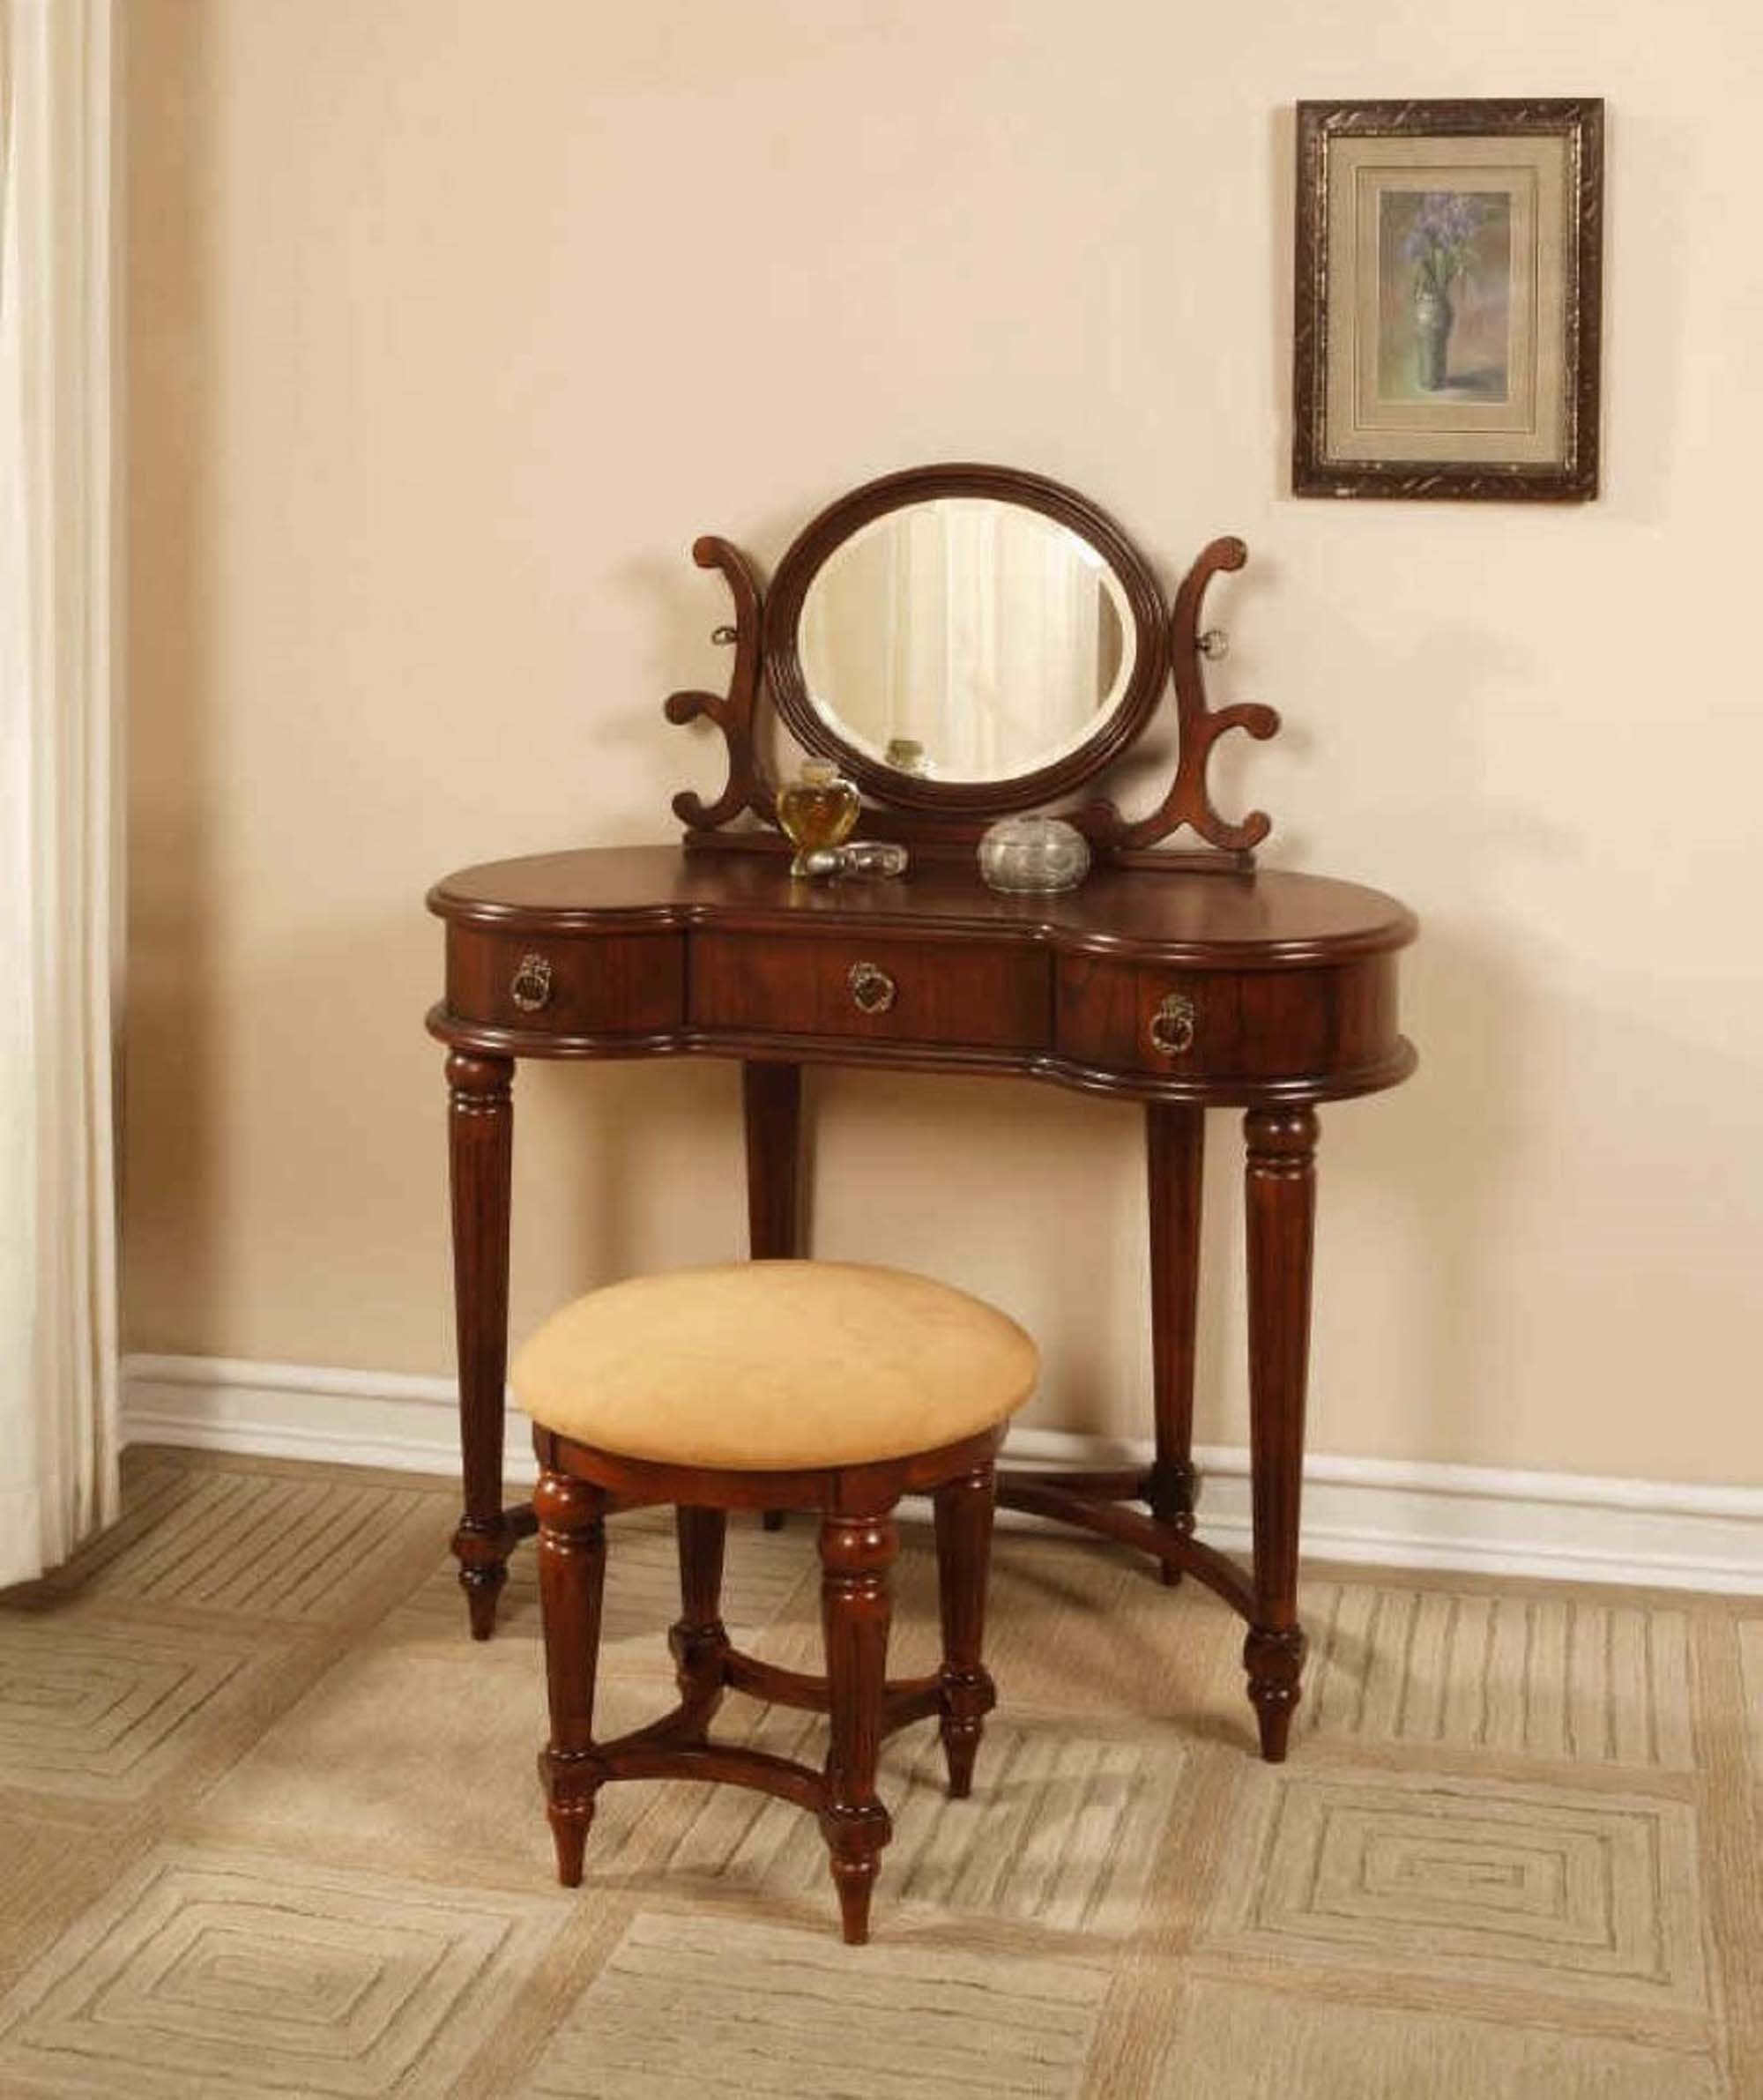 Furniture Vintage Vanity Table With Mirror And Bench Design Ideas within Small Mirrored Vanity - Bedroom Design Ideas